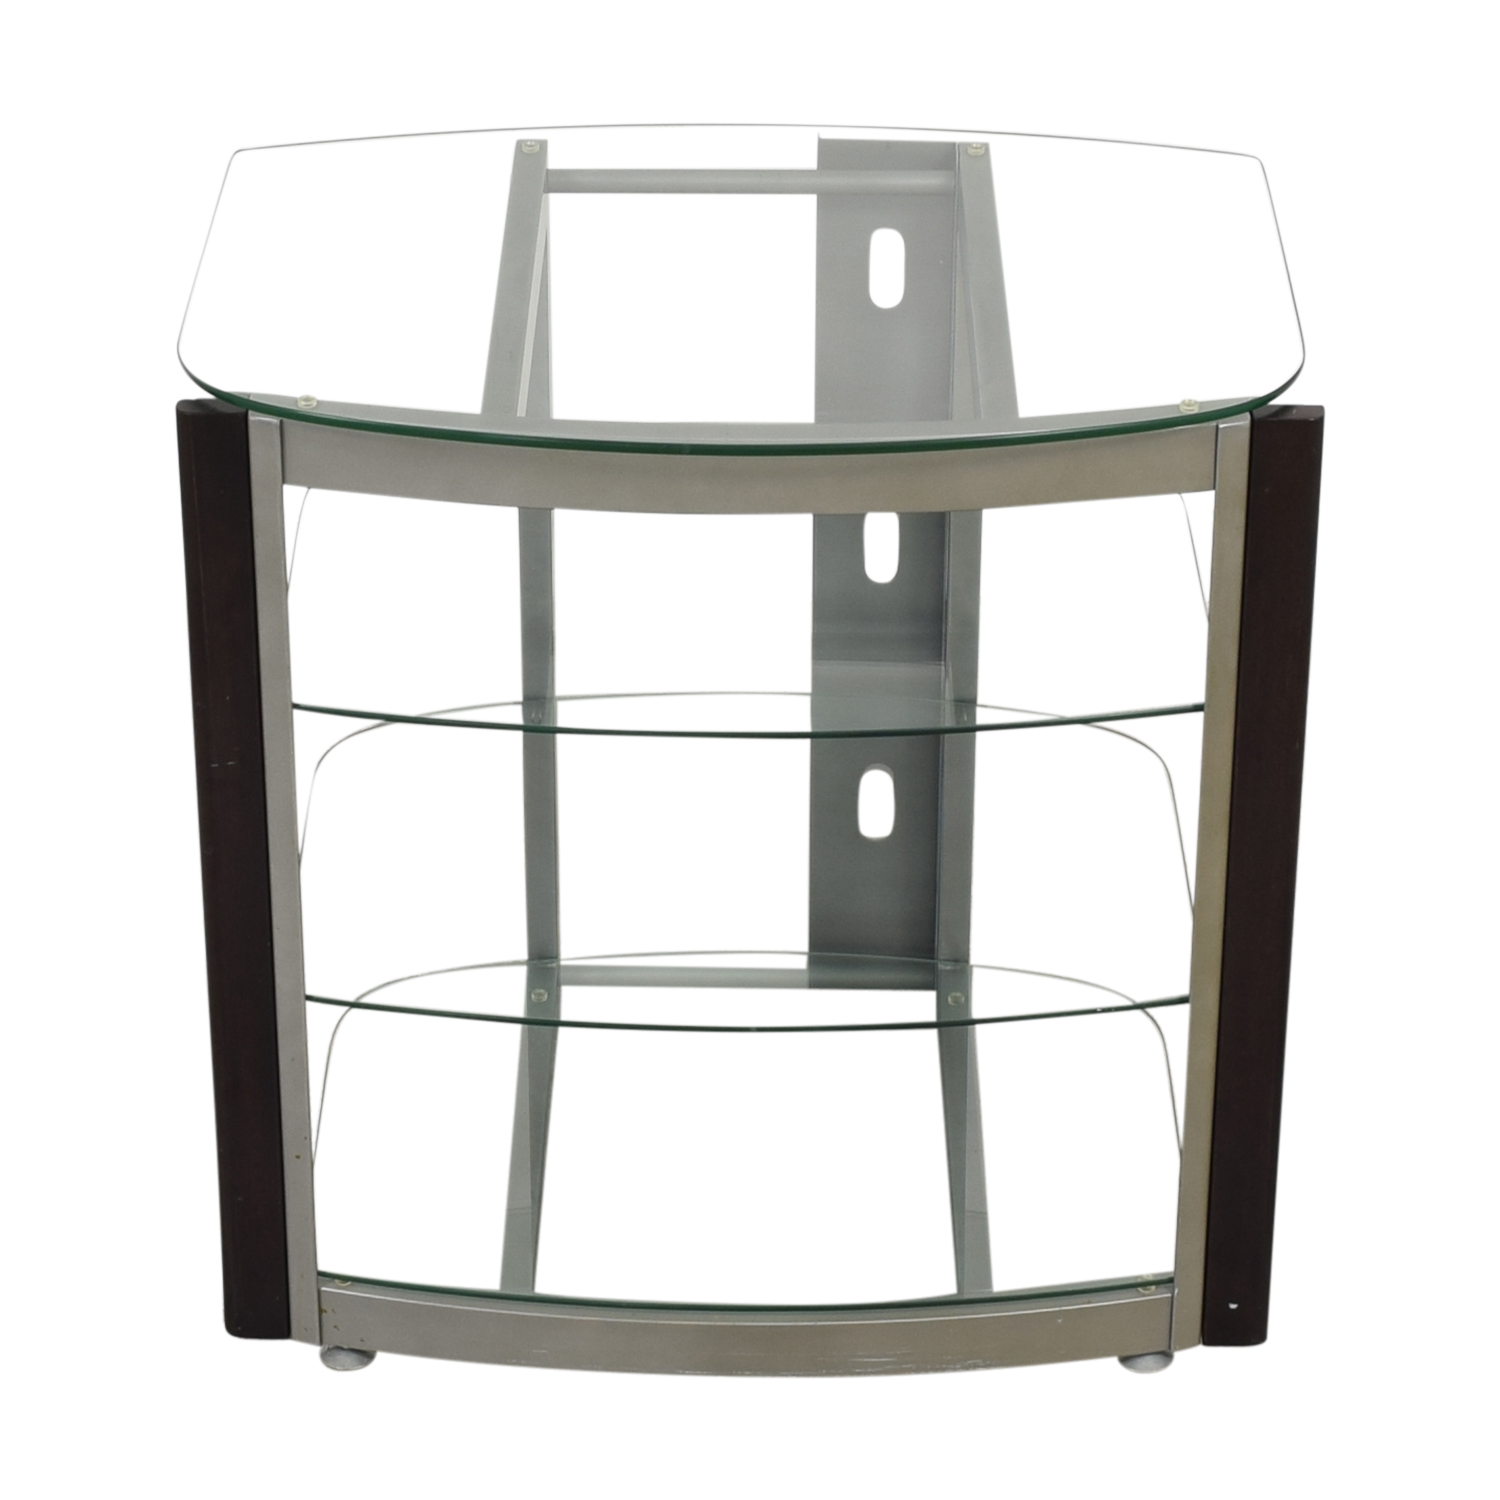 West Elm Glass TV Stand dimensions